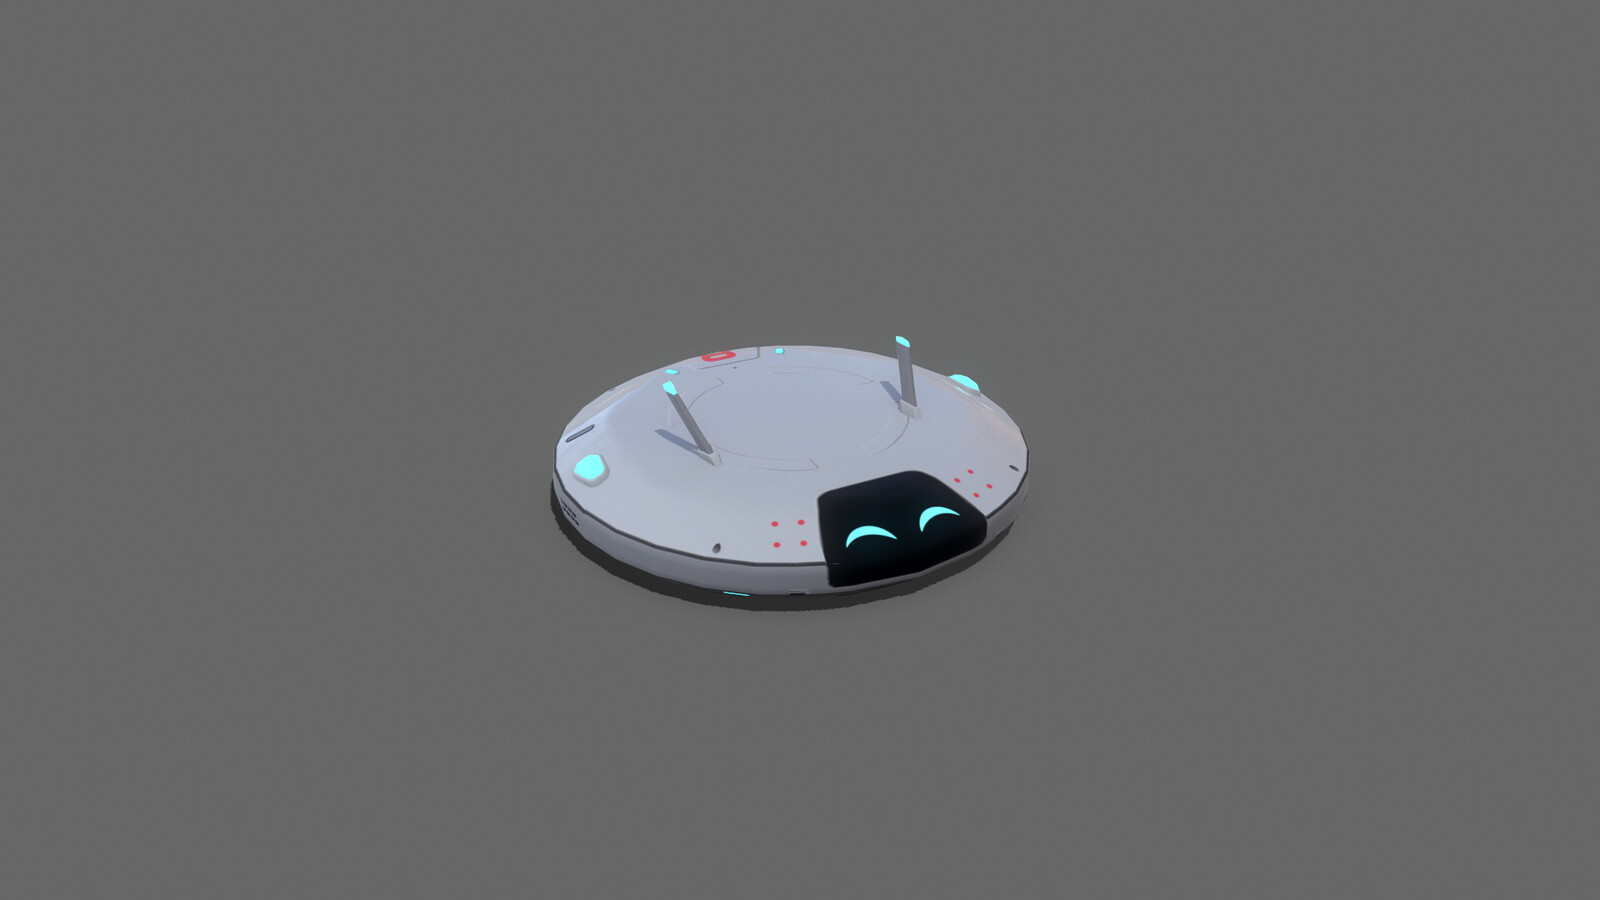 VR Stylized sci fi roomba